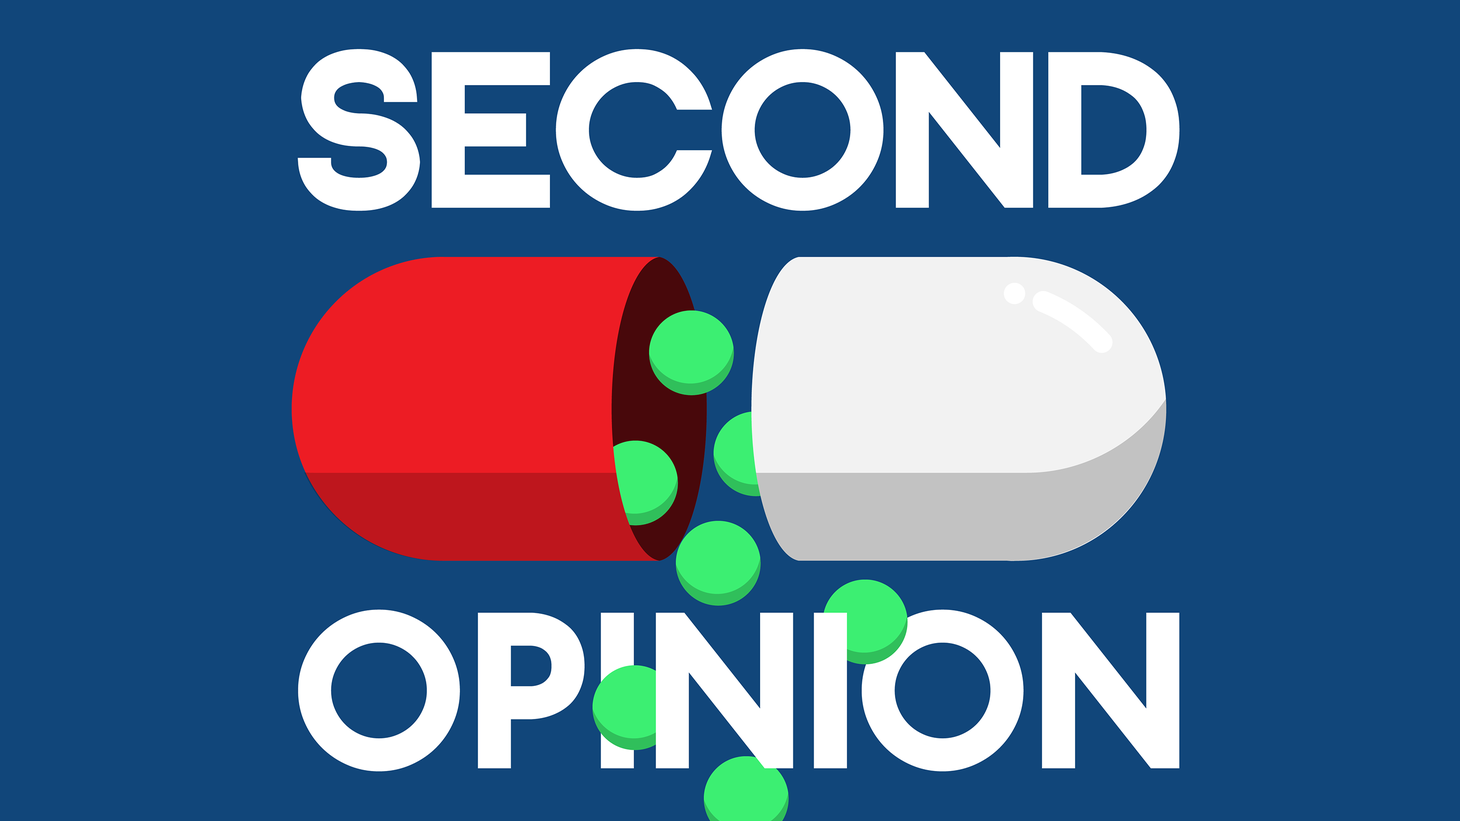 How is it that your doctor decides which drug to prescribe?